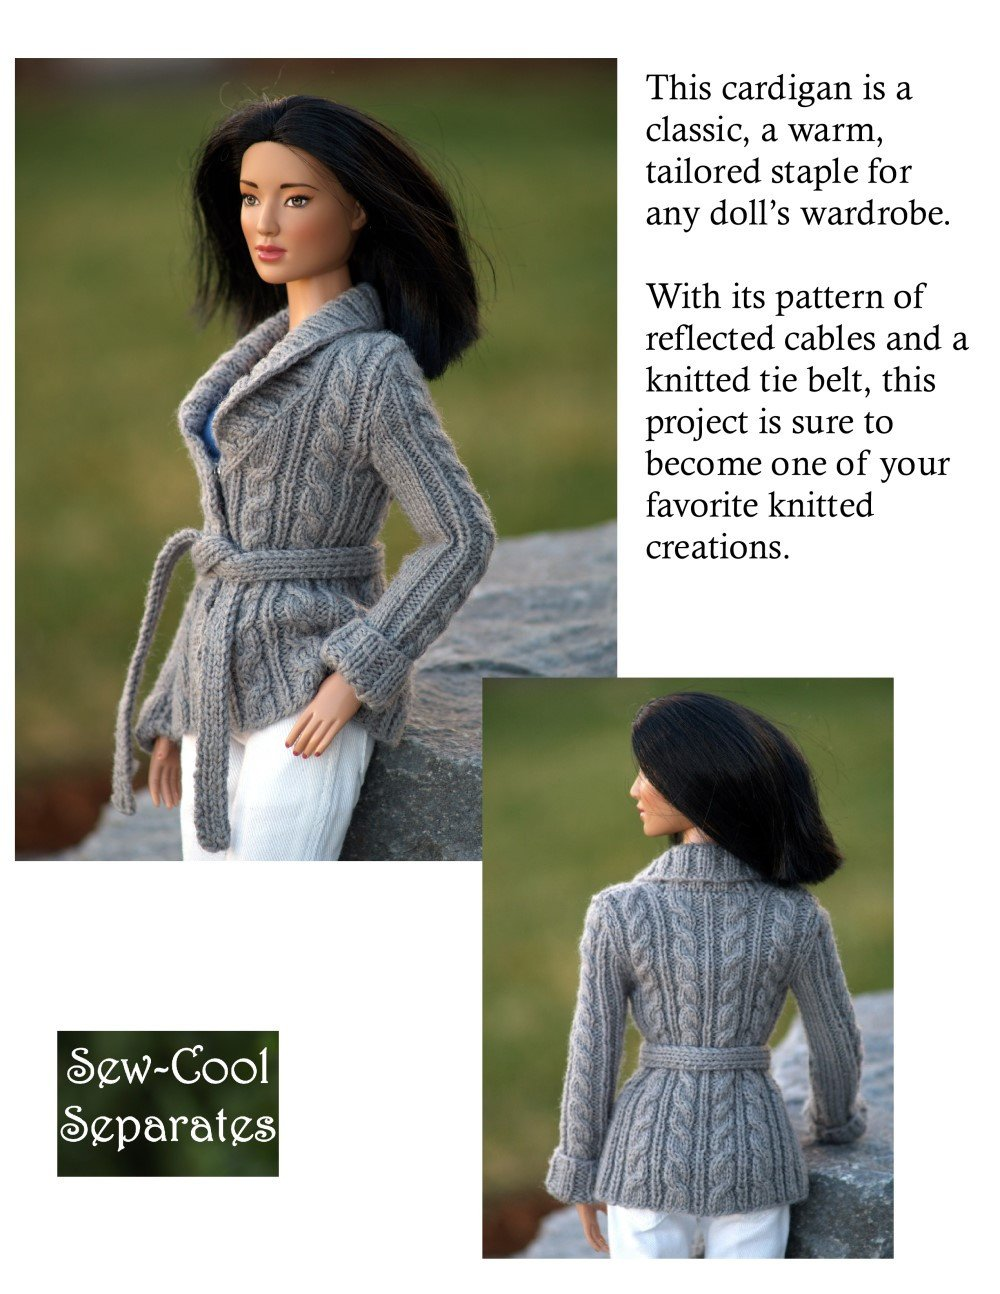 Sew Cool Separates Classy Cardigan Doll Clothes Knitting Pattern 16 ...